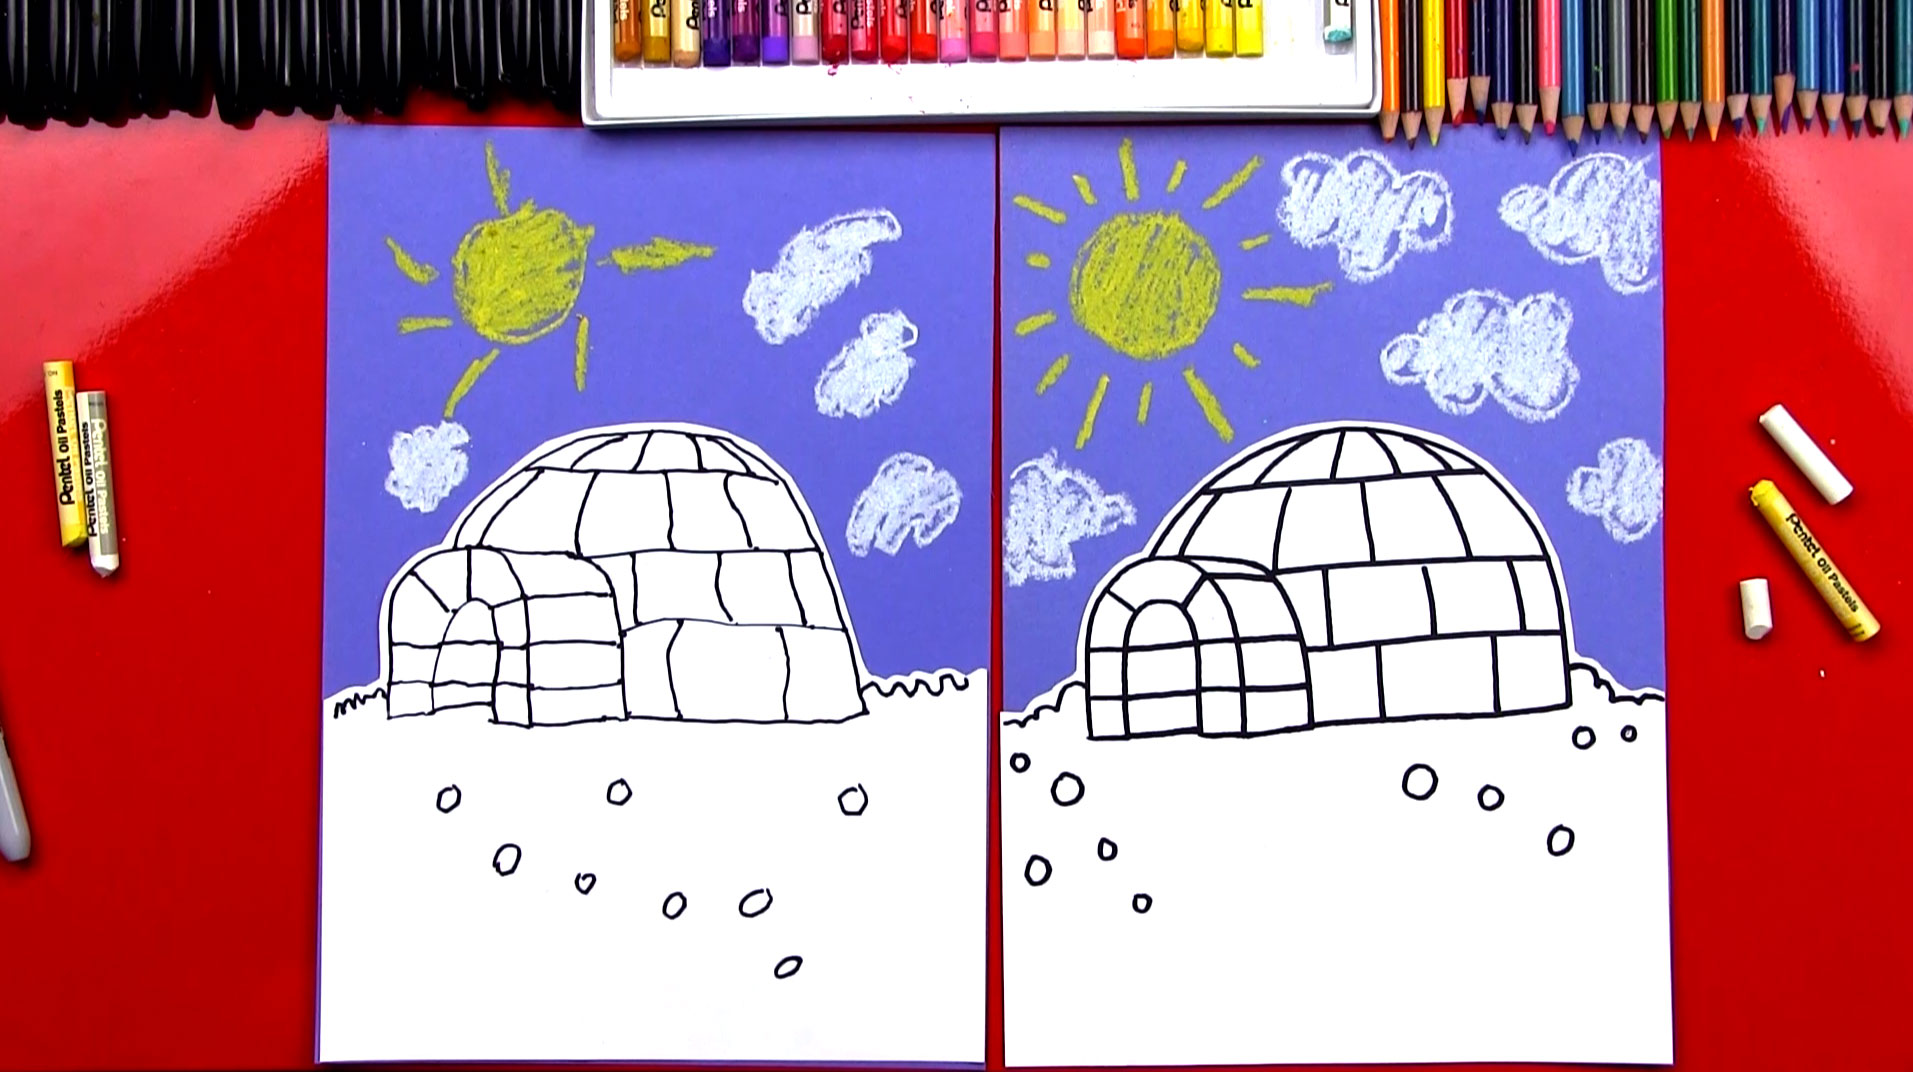 Forum on this topic: How to Draw an Igloo, how-to-draw-an-igloo/